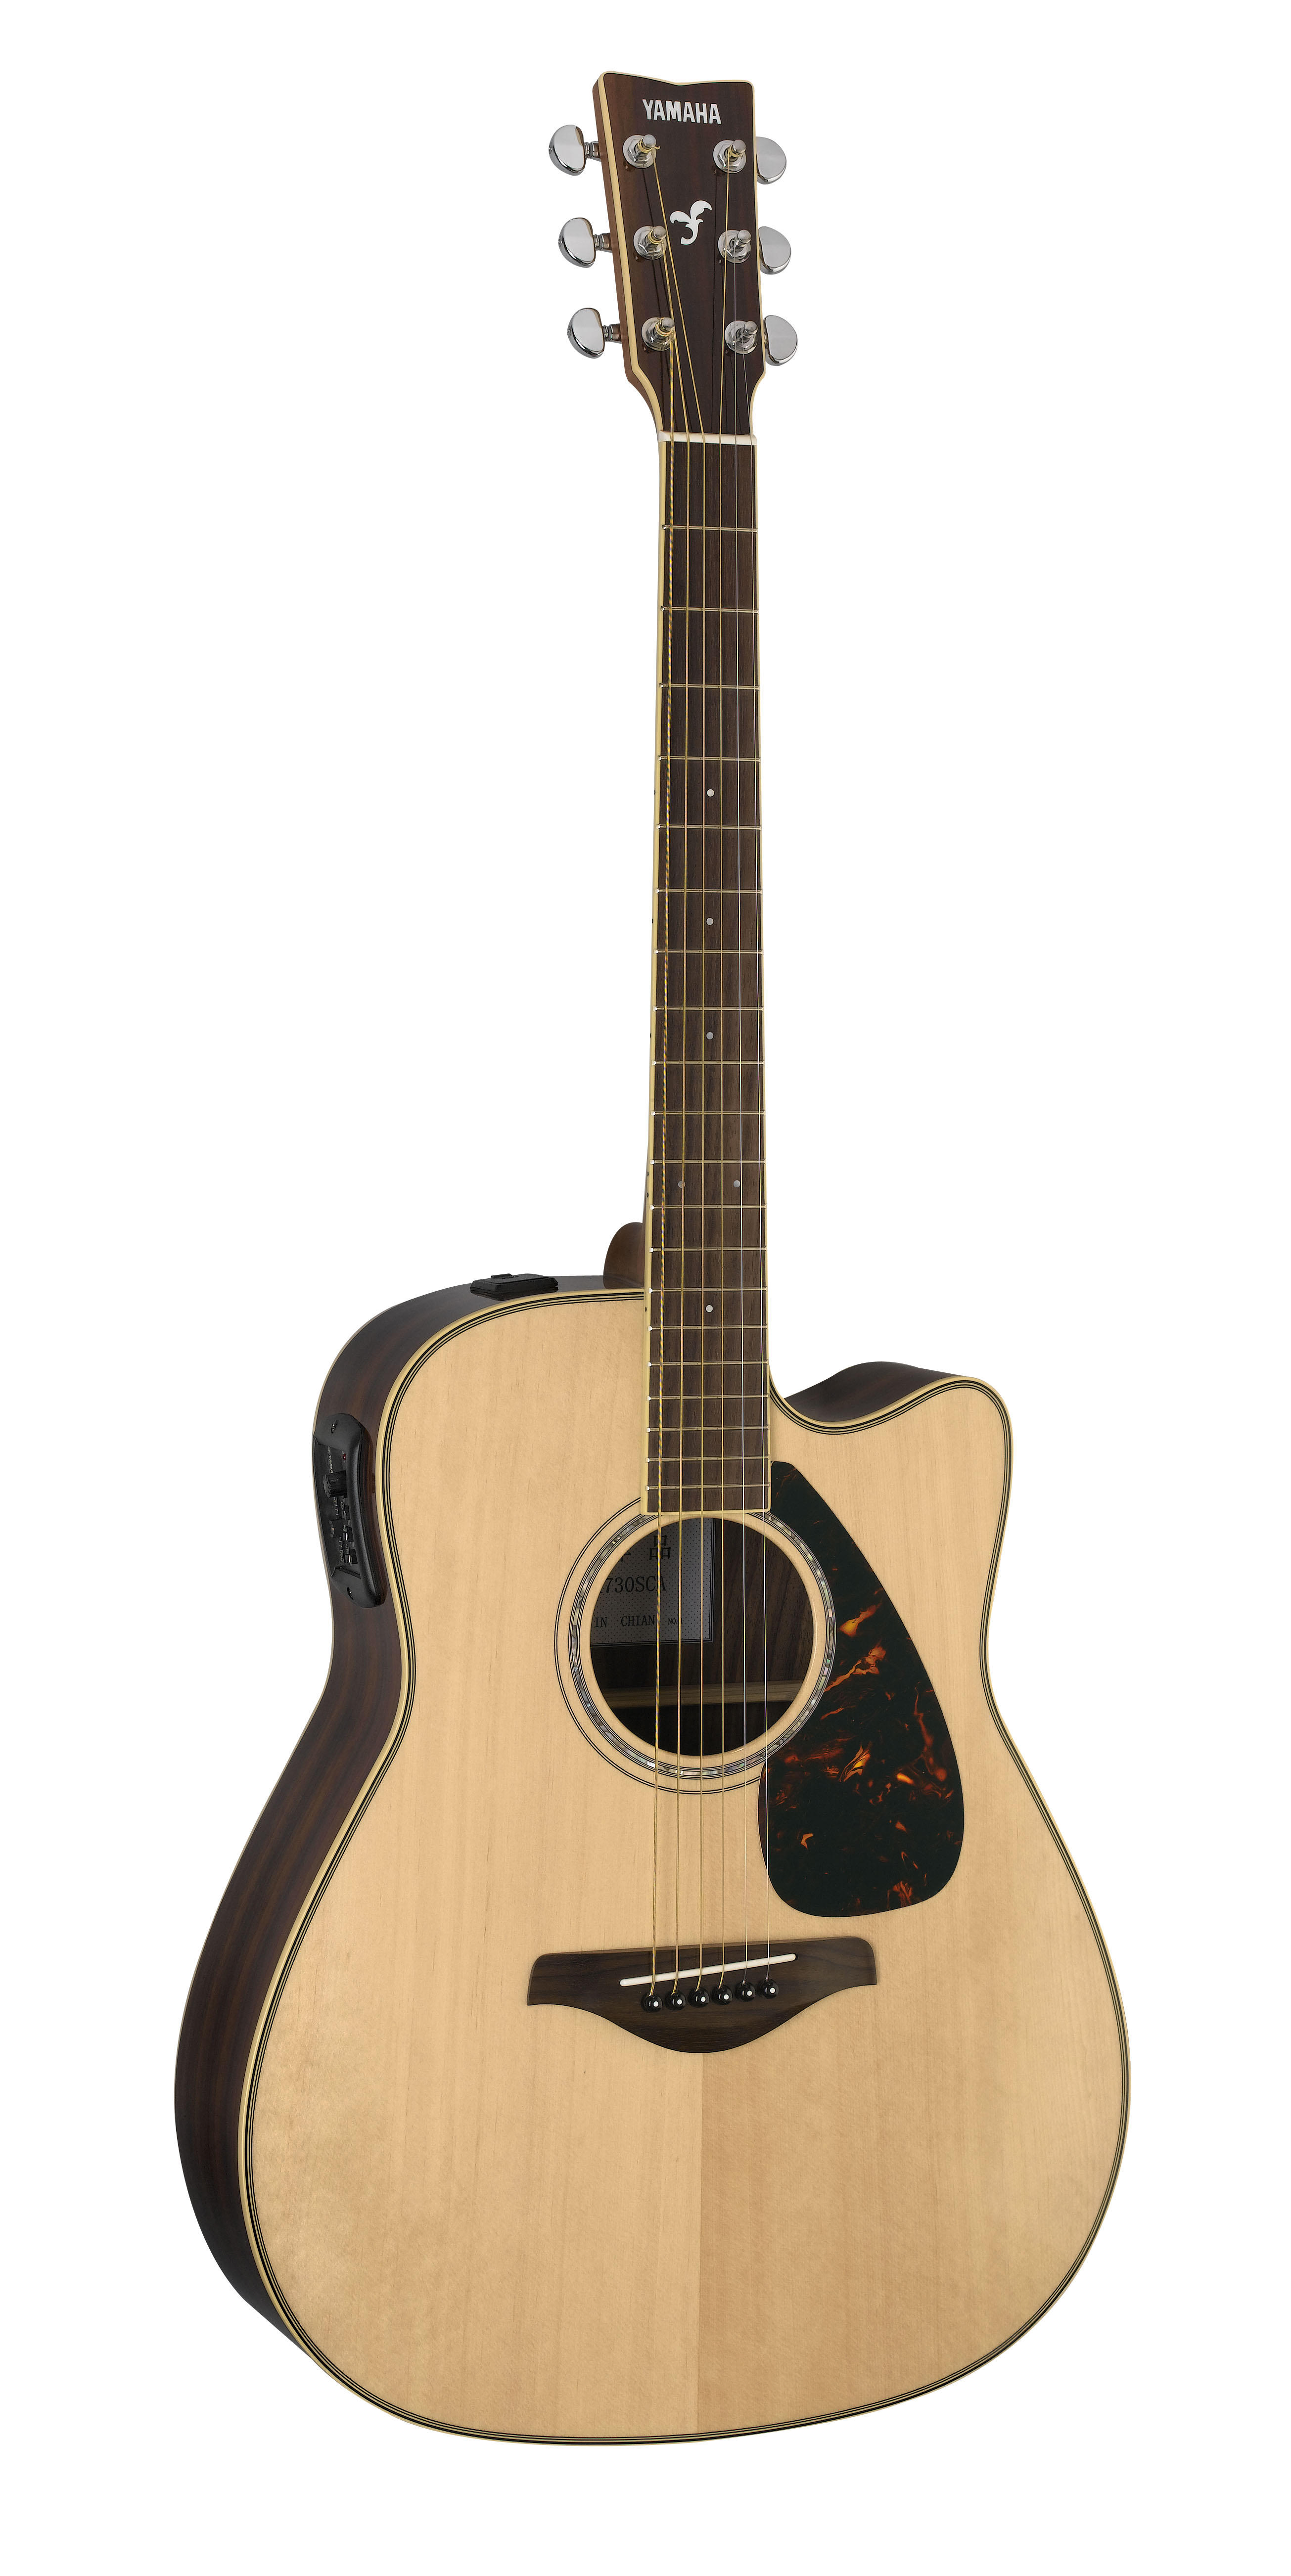 Yamaha FGX730SCA Acoustic-Electric Guitar